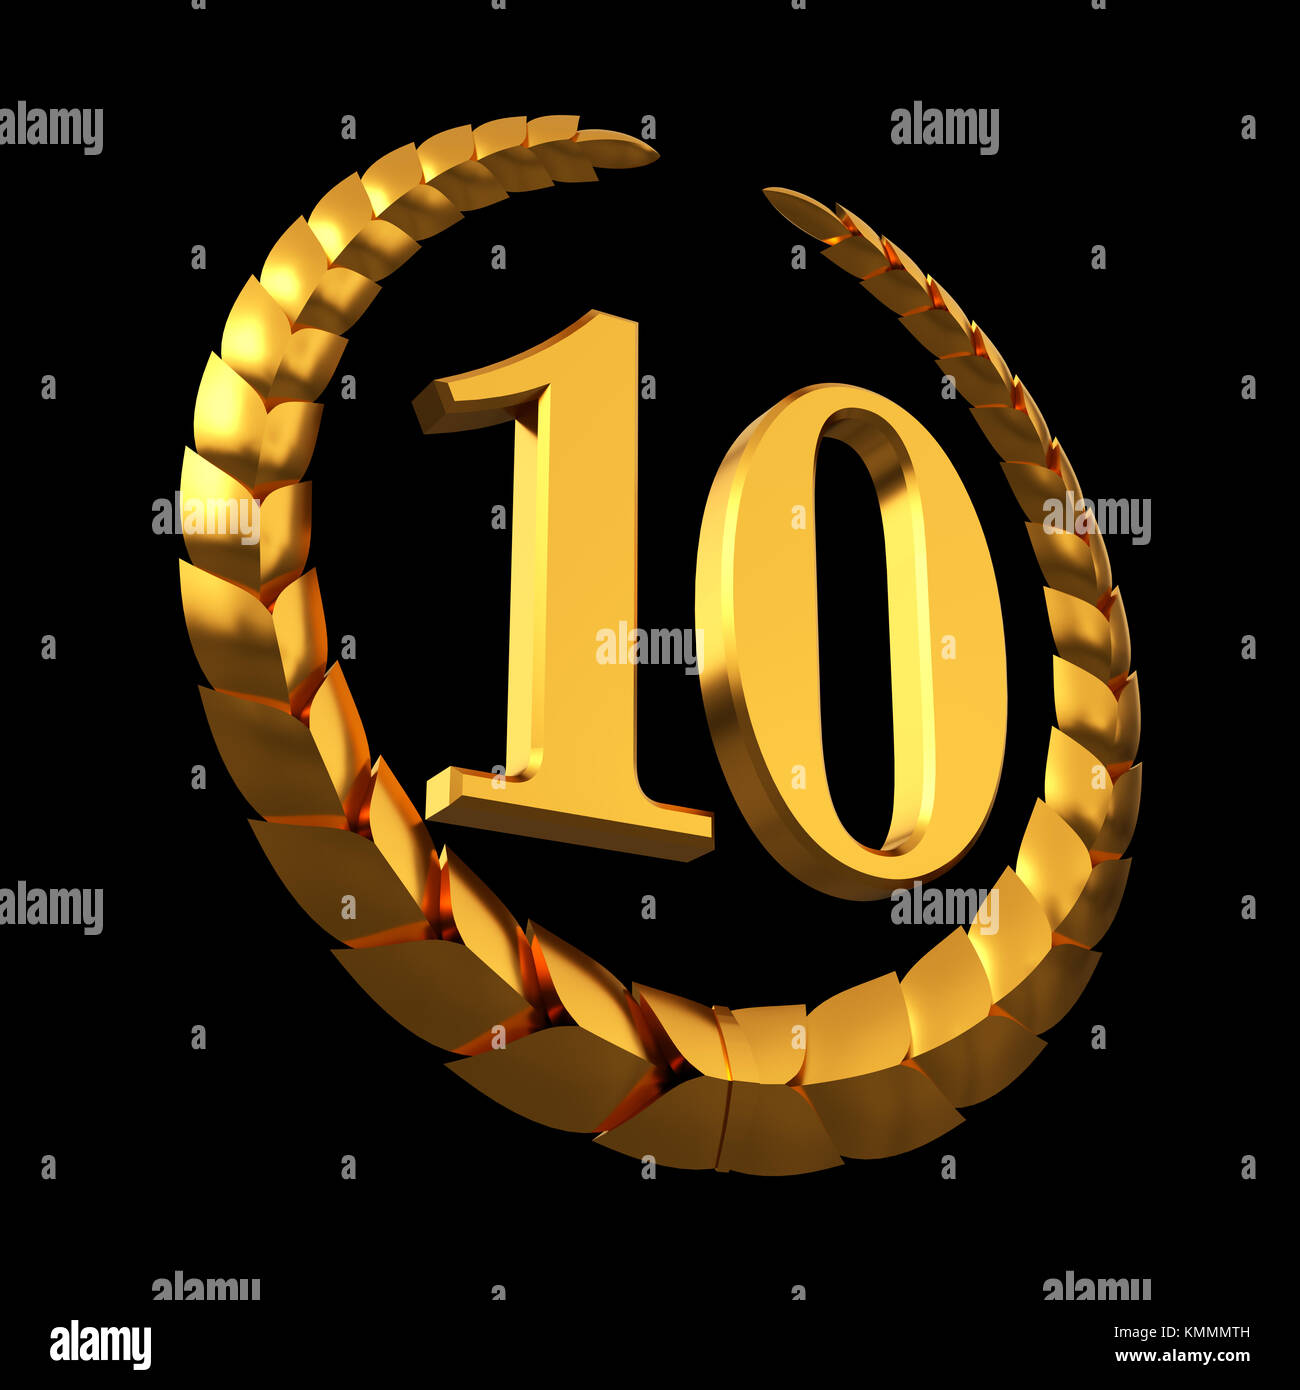 Anniversary Golden Laurel Wreath And Numeral 10 On Black Background Stock Photo